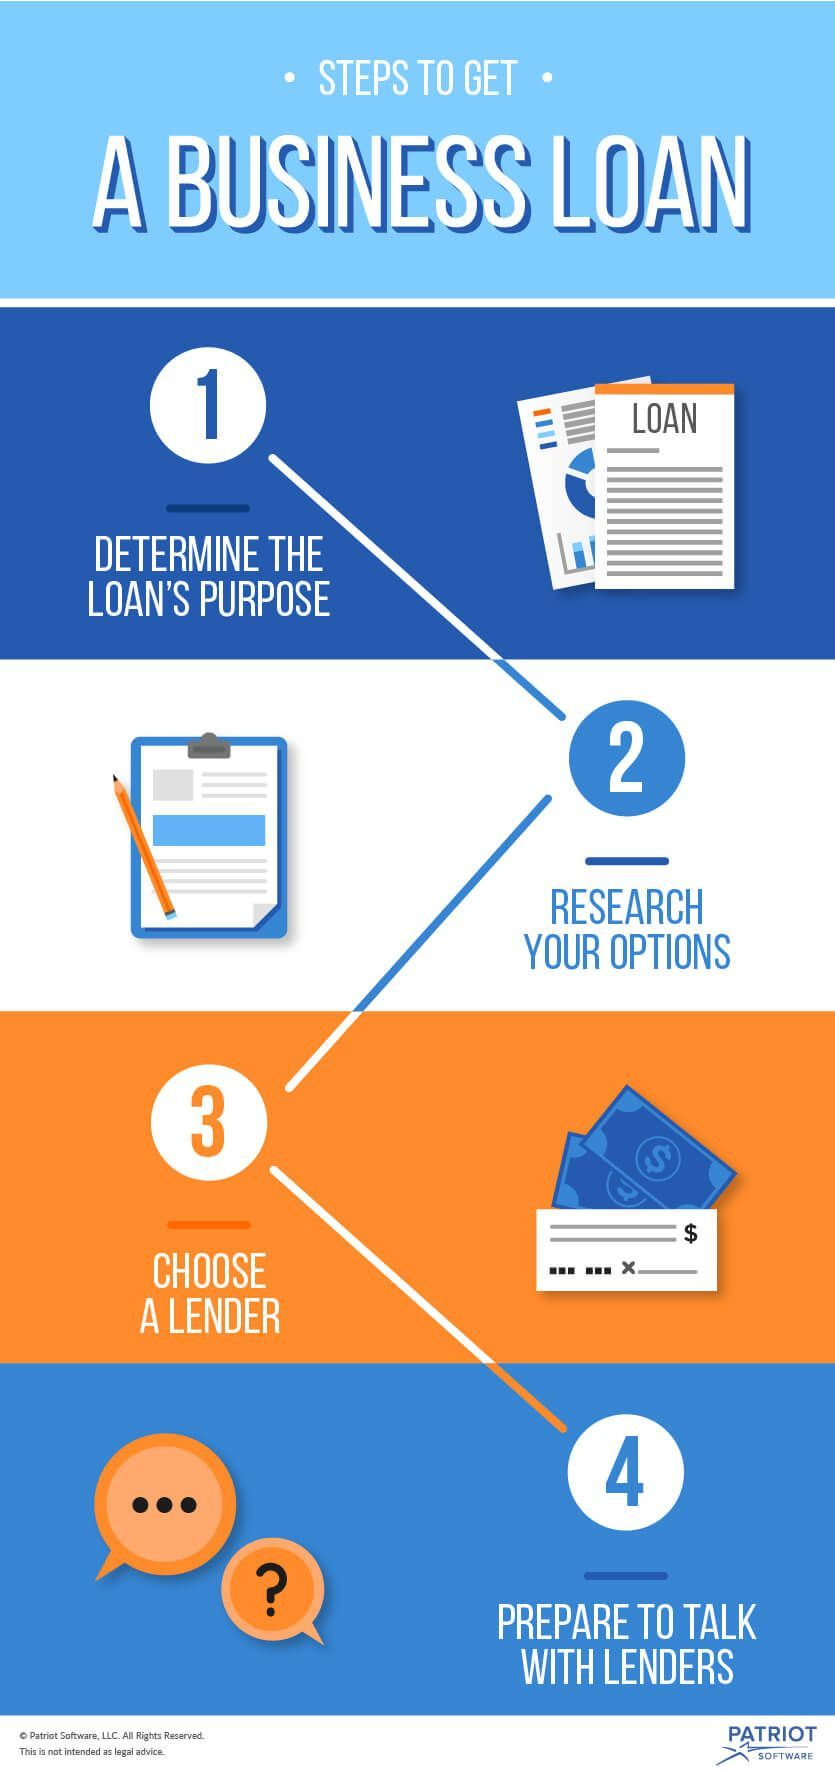 How to Get a Small Business Loan Business loans, Small